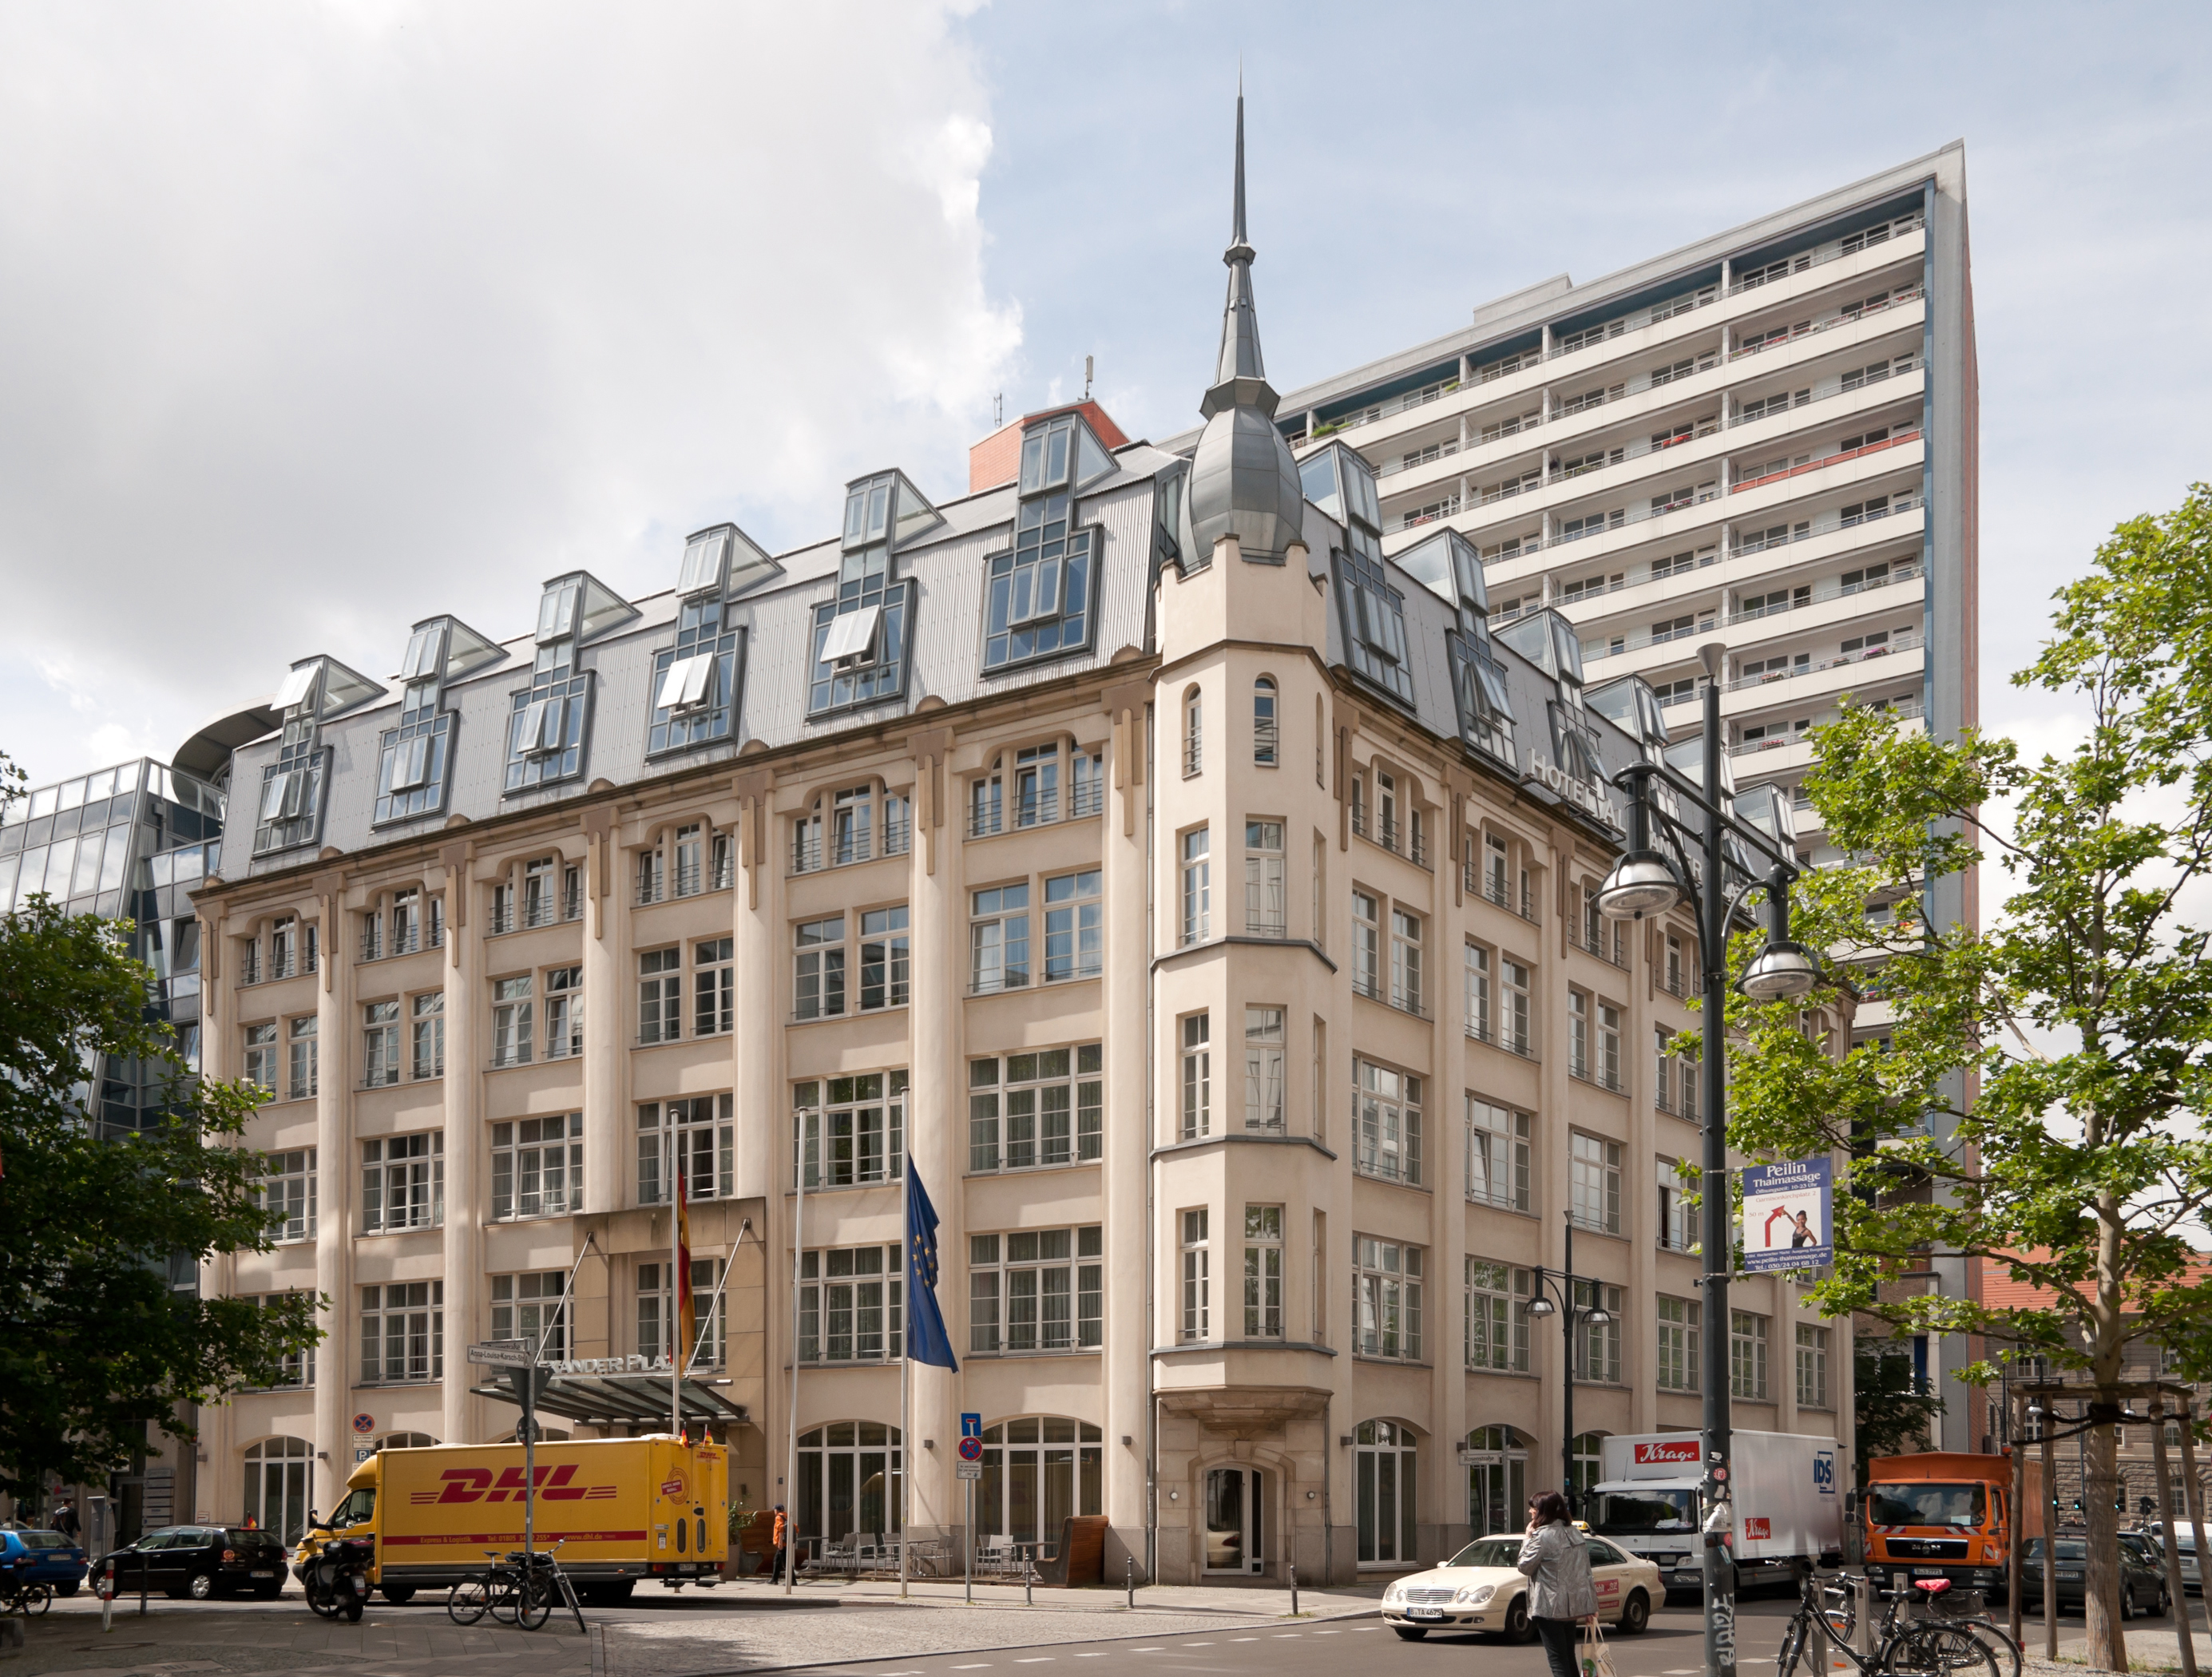 Hotel In Berlin Britzerstra Ef Bf Bde